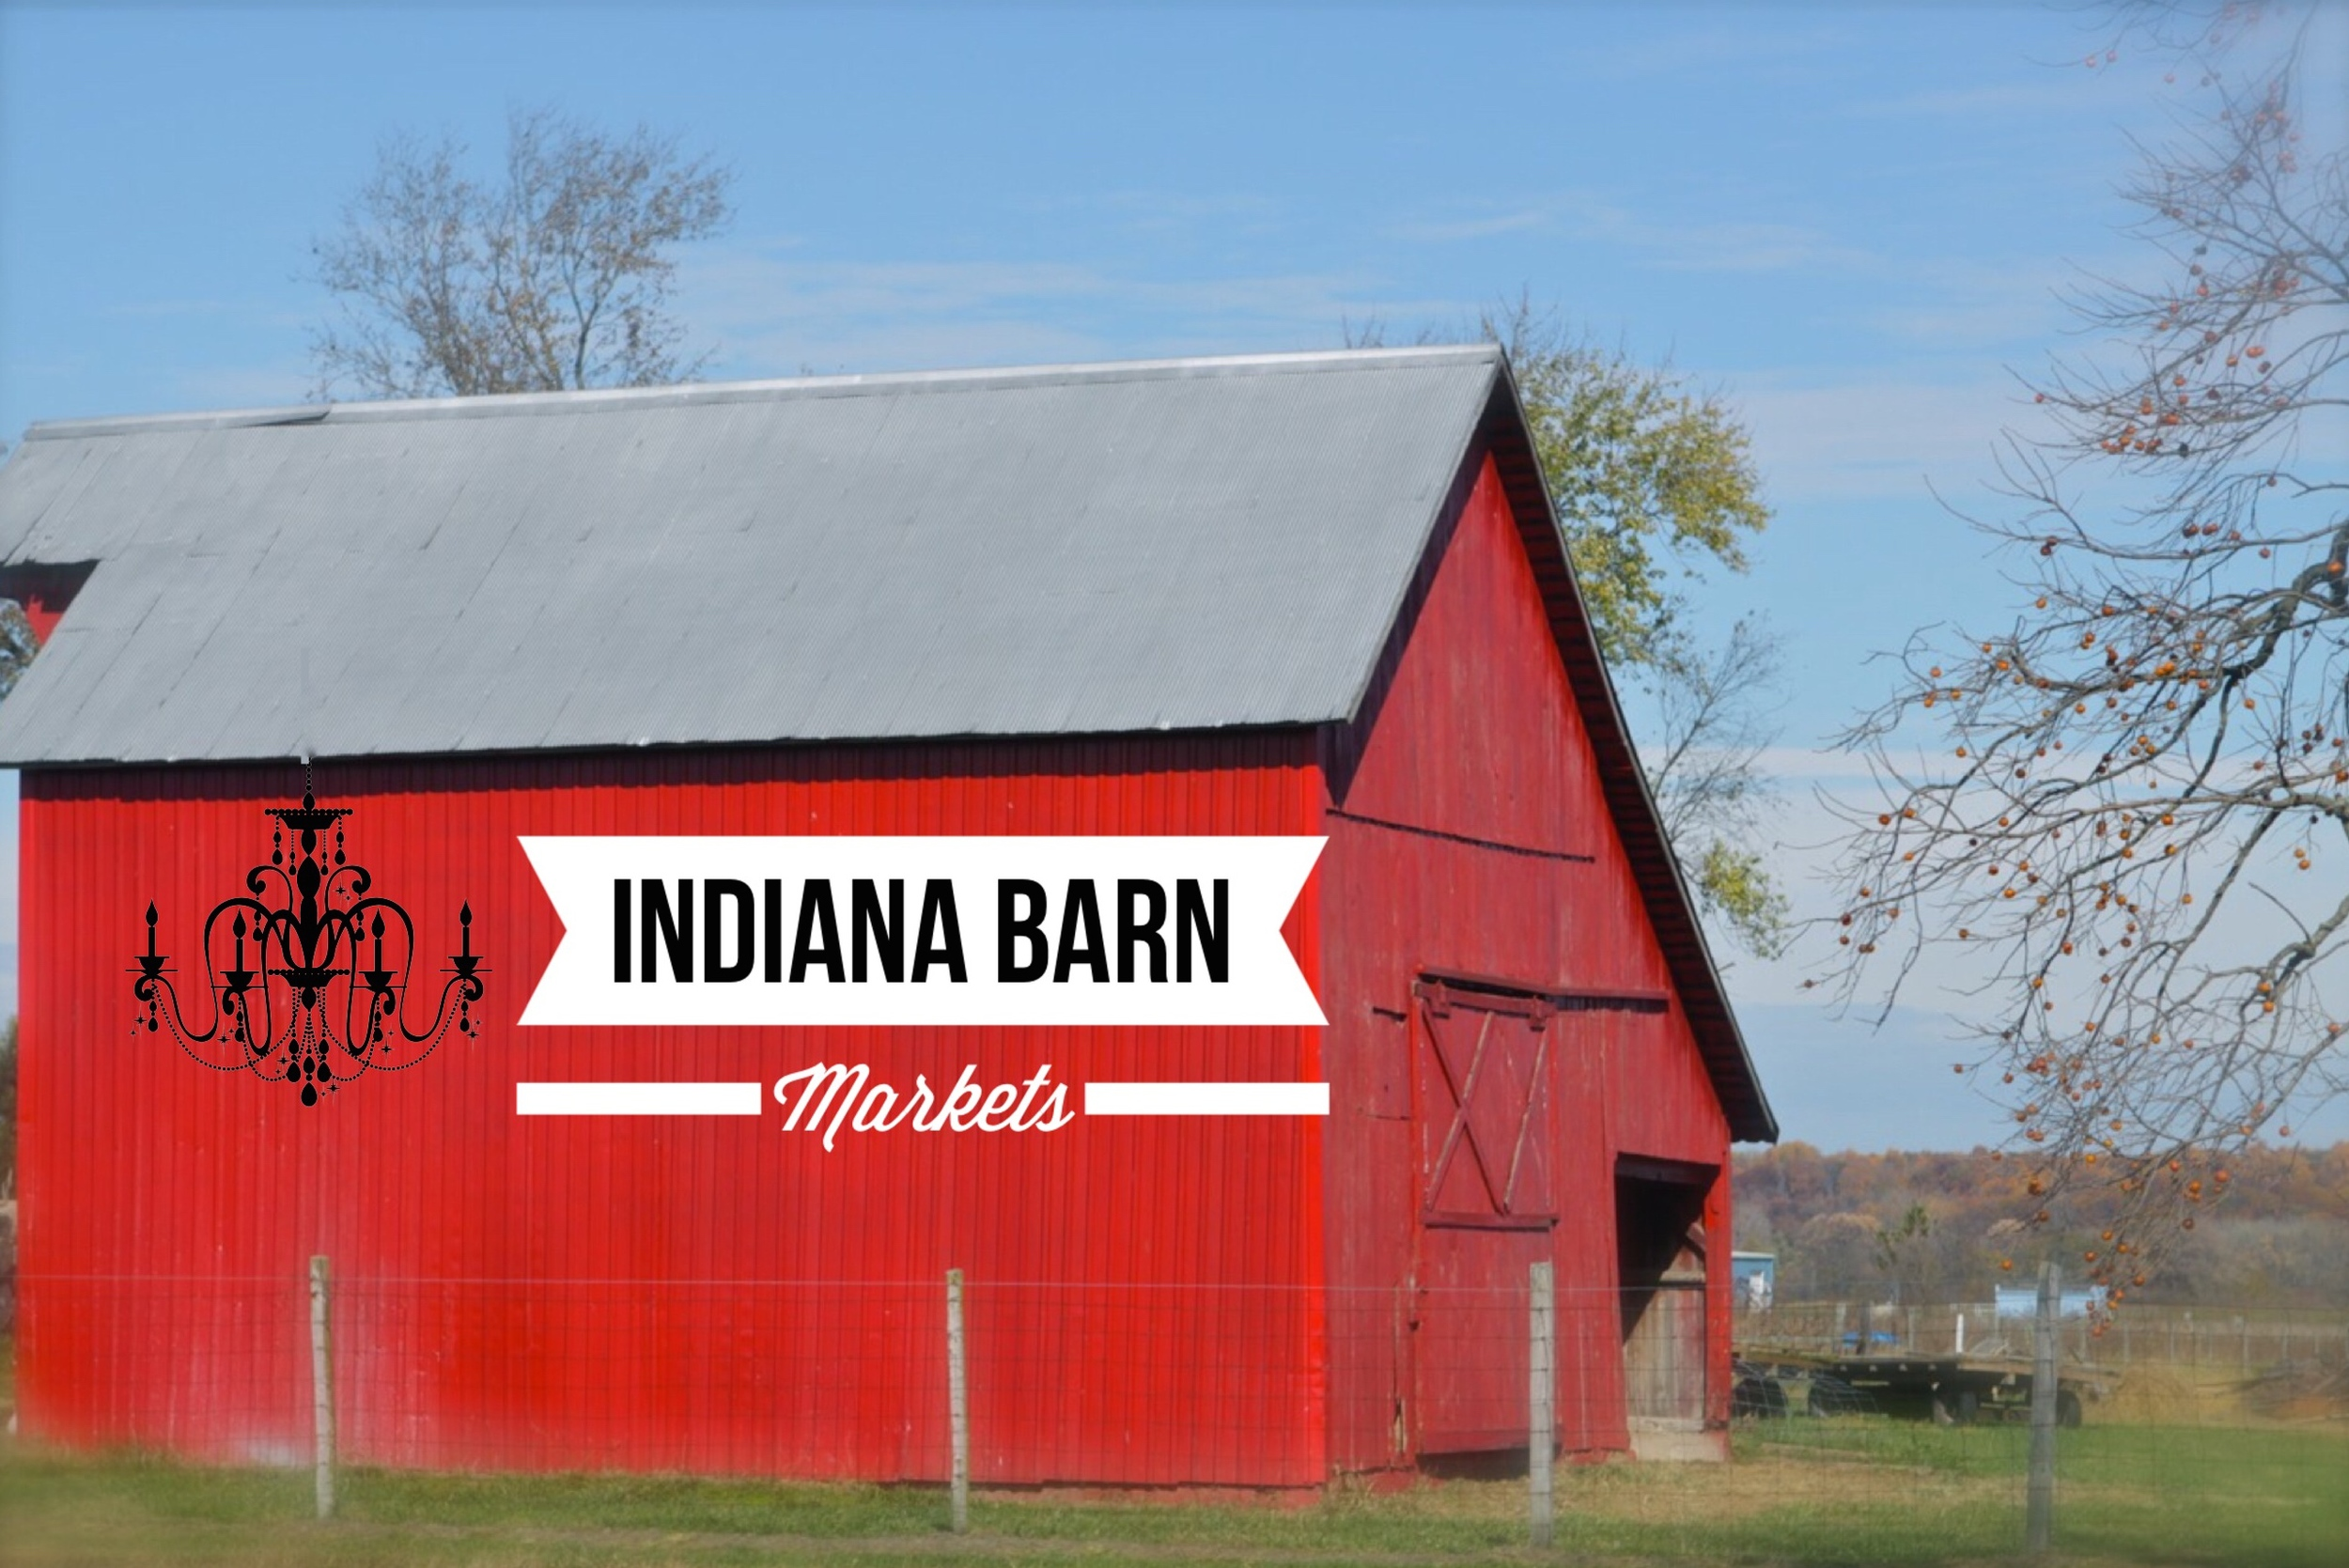 Indiana Barn Markets